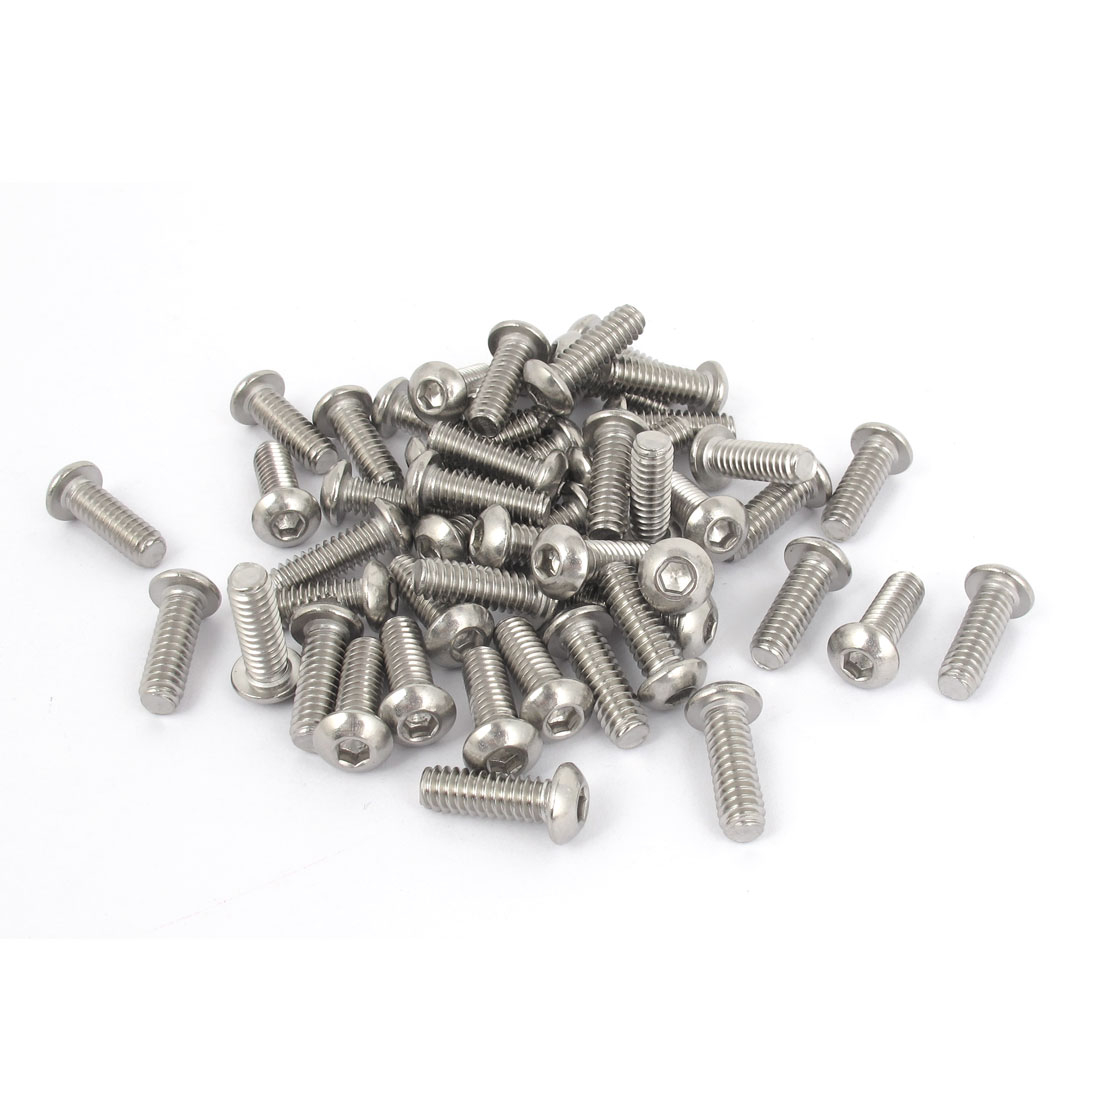 "50pcs 1/4""-20x3/4"" Stainless Steel Hex Socket Button Head Bolts Screws"